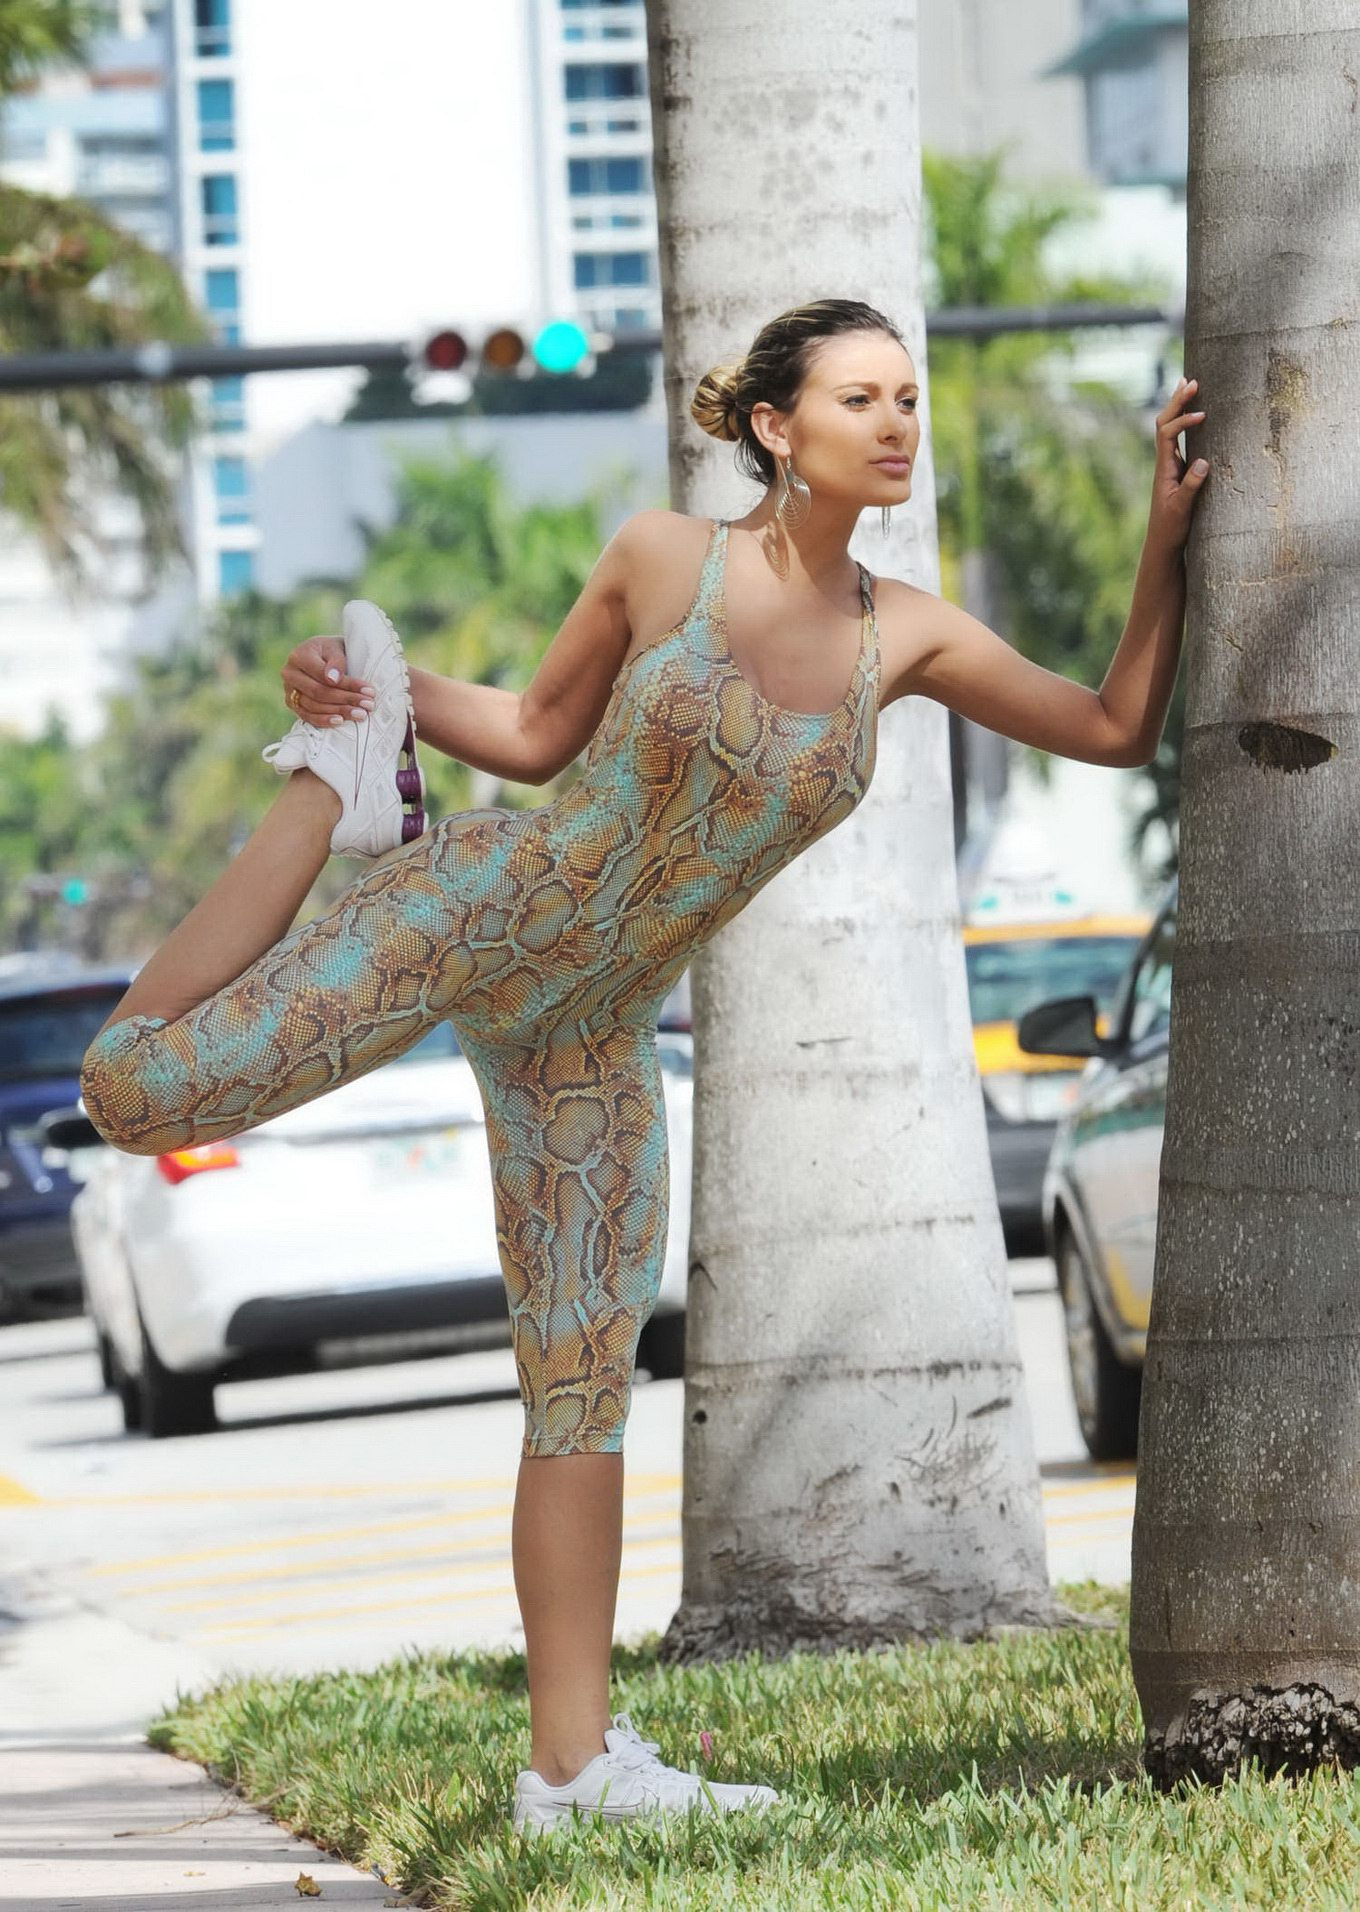 Andressa Urach bursting out of snake print leotard while working out ...